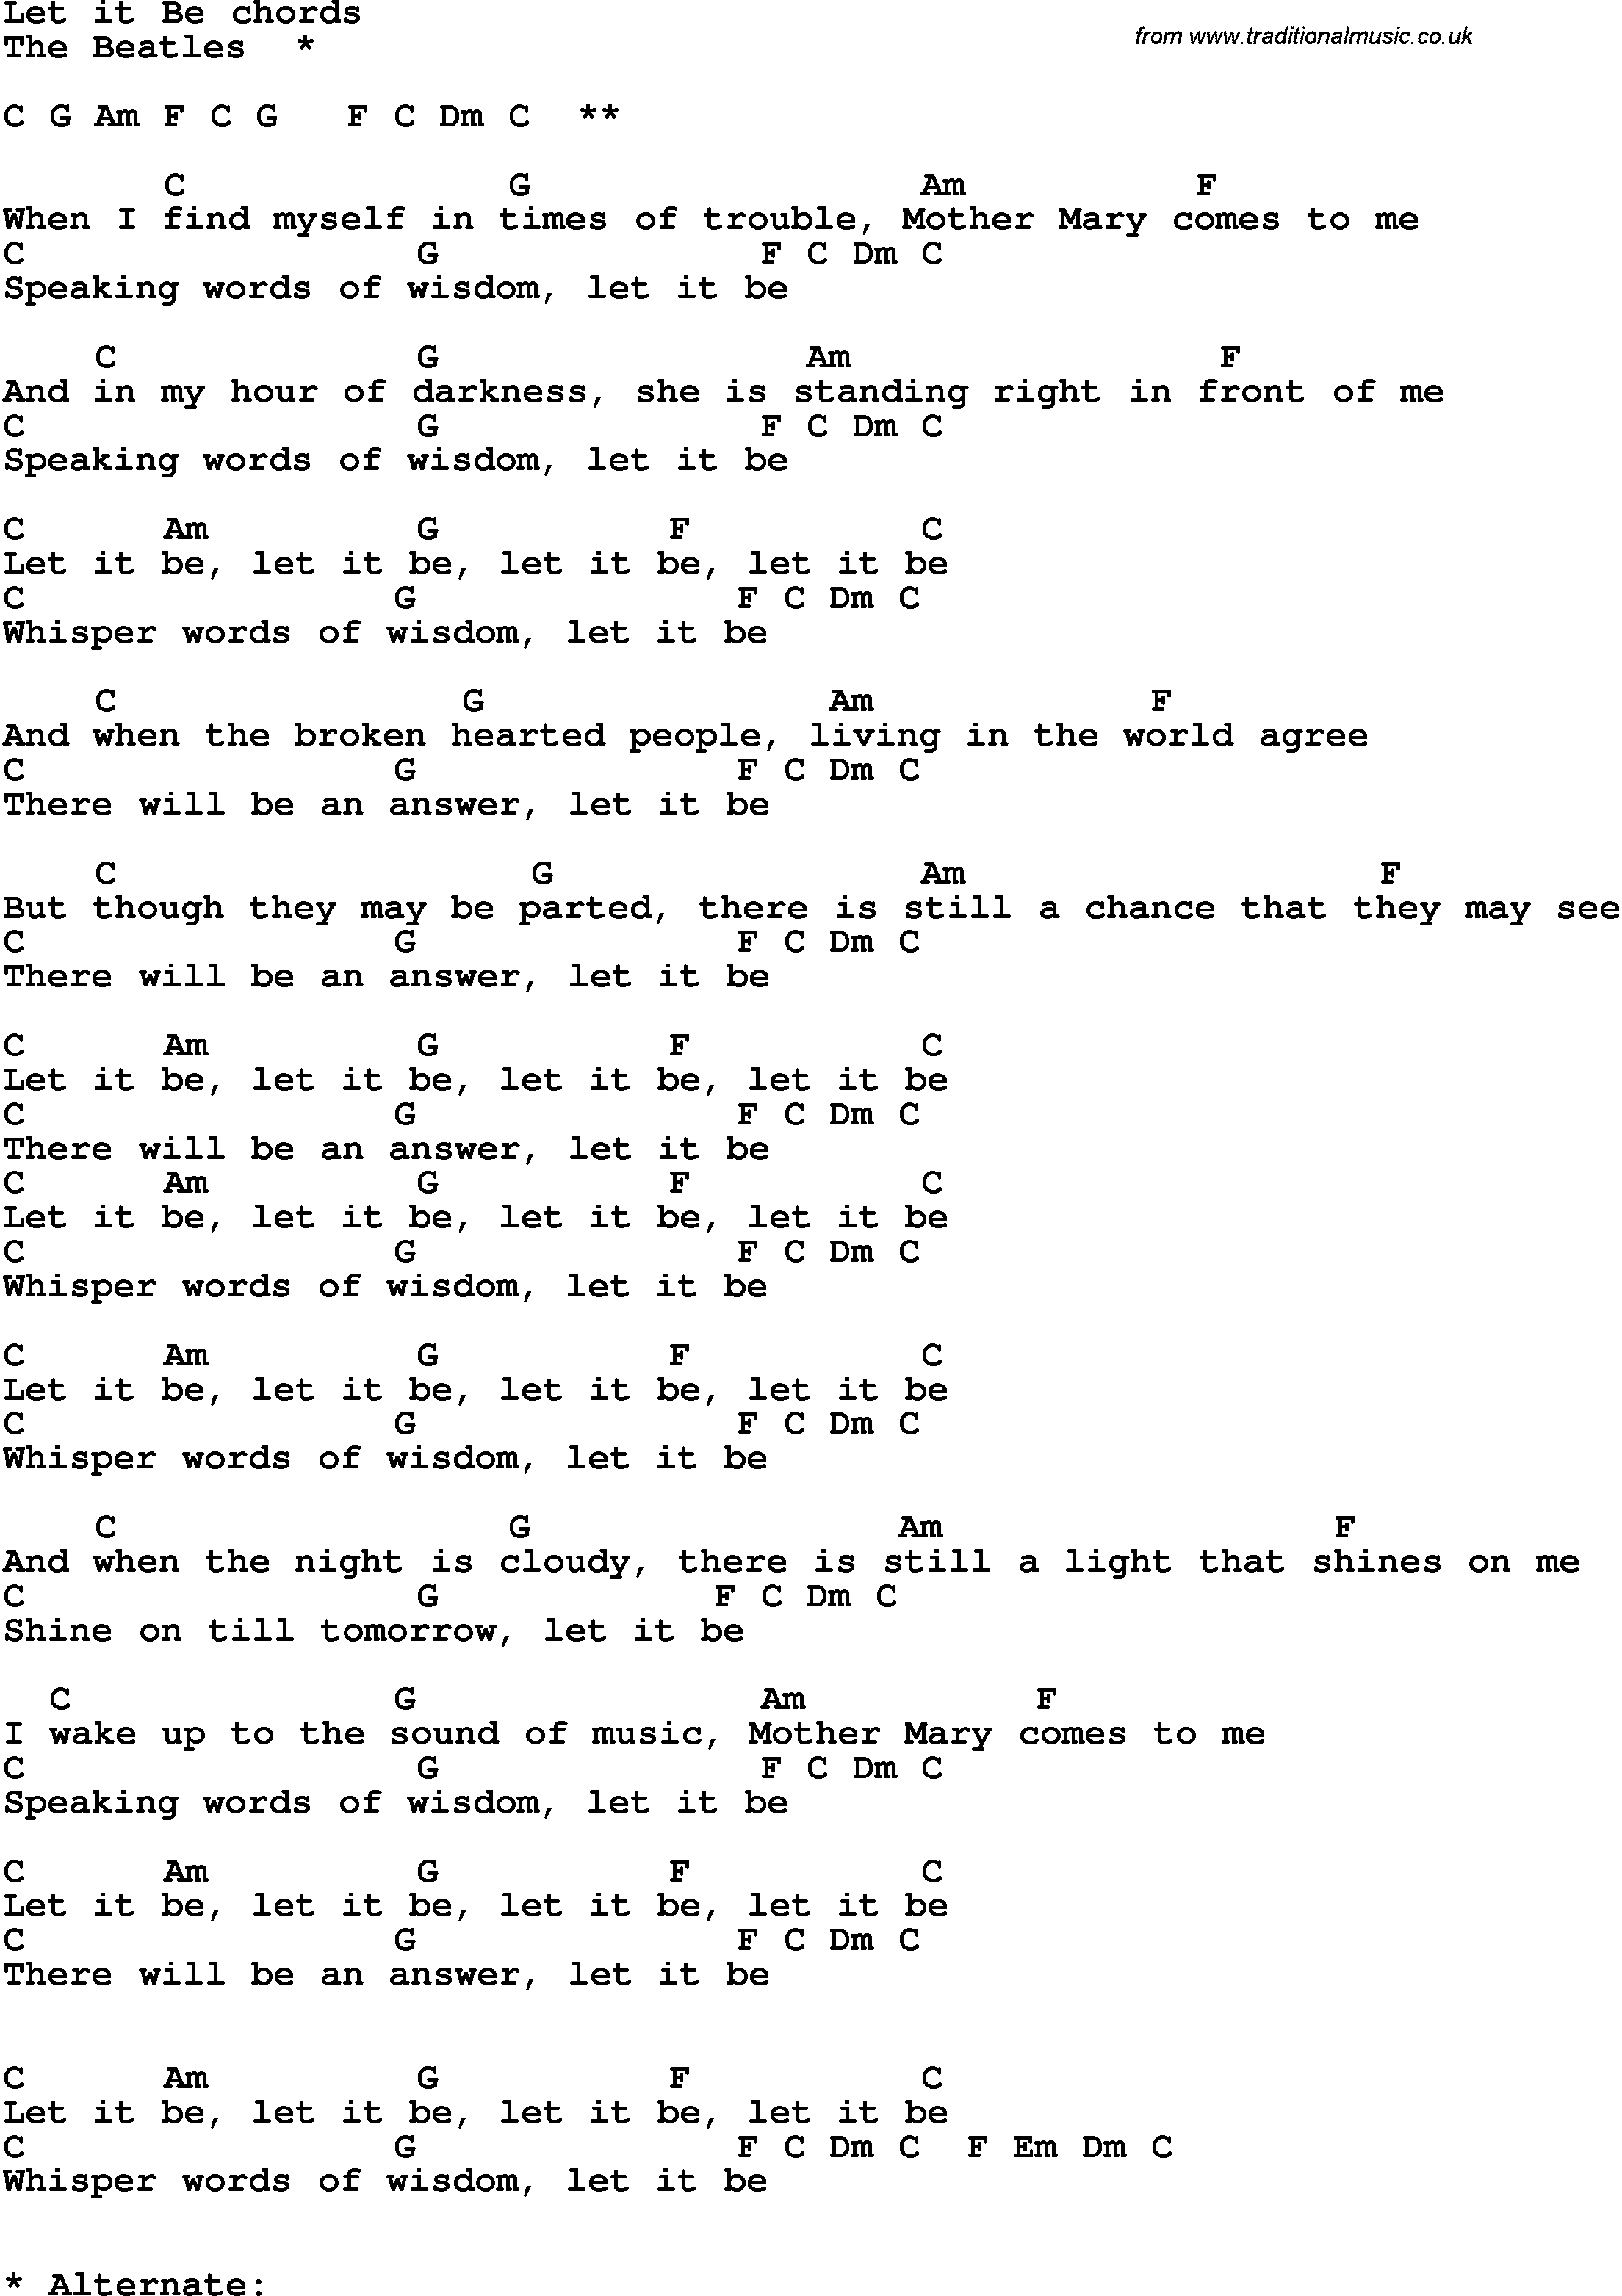 Let It Be Lyrics Beatles Song Lyrics With Guitar Chords For Let It